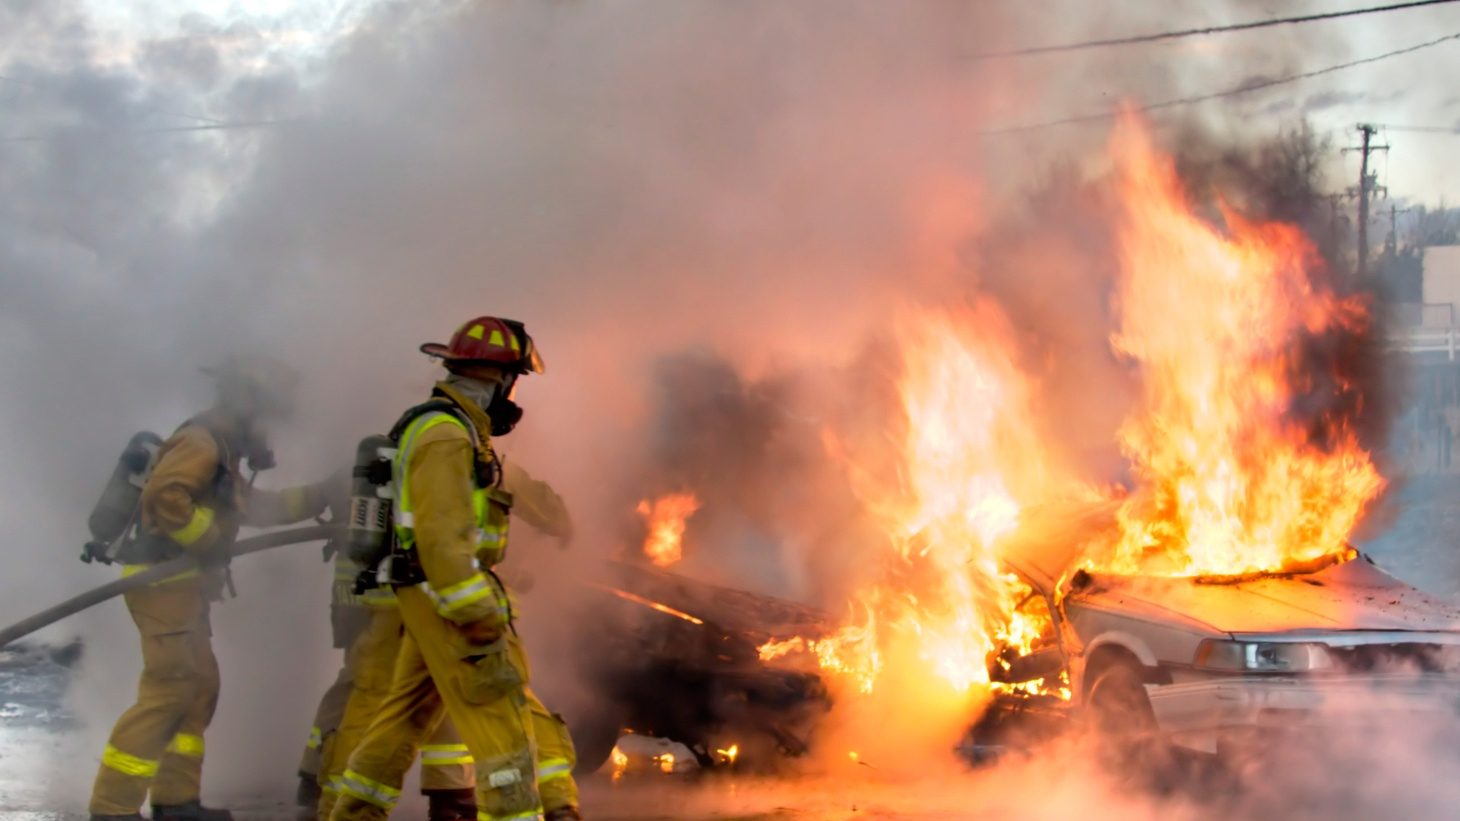 In a major disaster in LA County, cops and firefighters in 88 cities should be able to talk to each other. But the federal government has suspended funding for a single communications system to replace 40 separate networks. It's all about claims that giant new cellphone towers on fire stations will increase the risk of cancer in local neighborhoods.